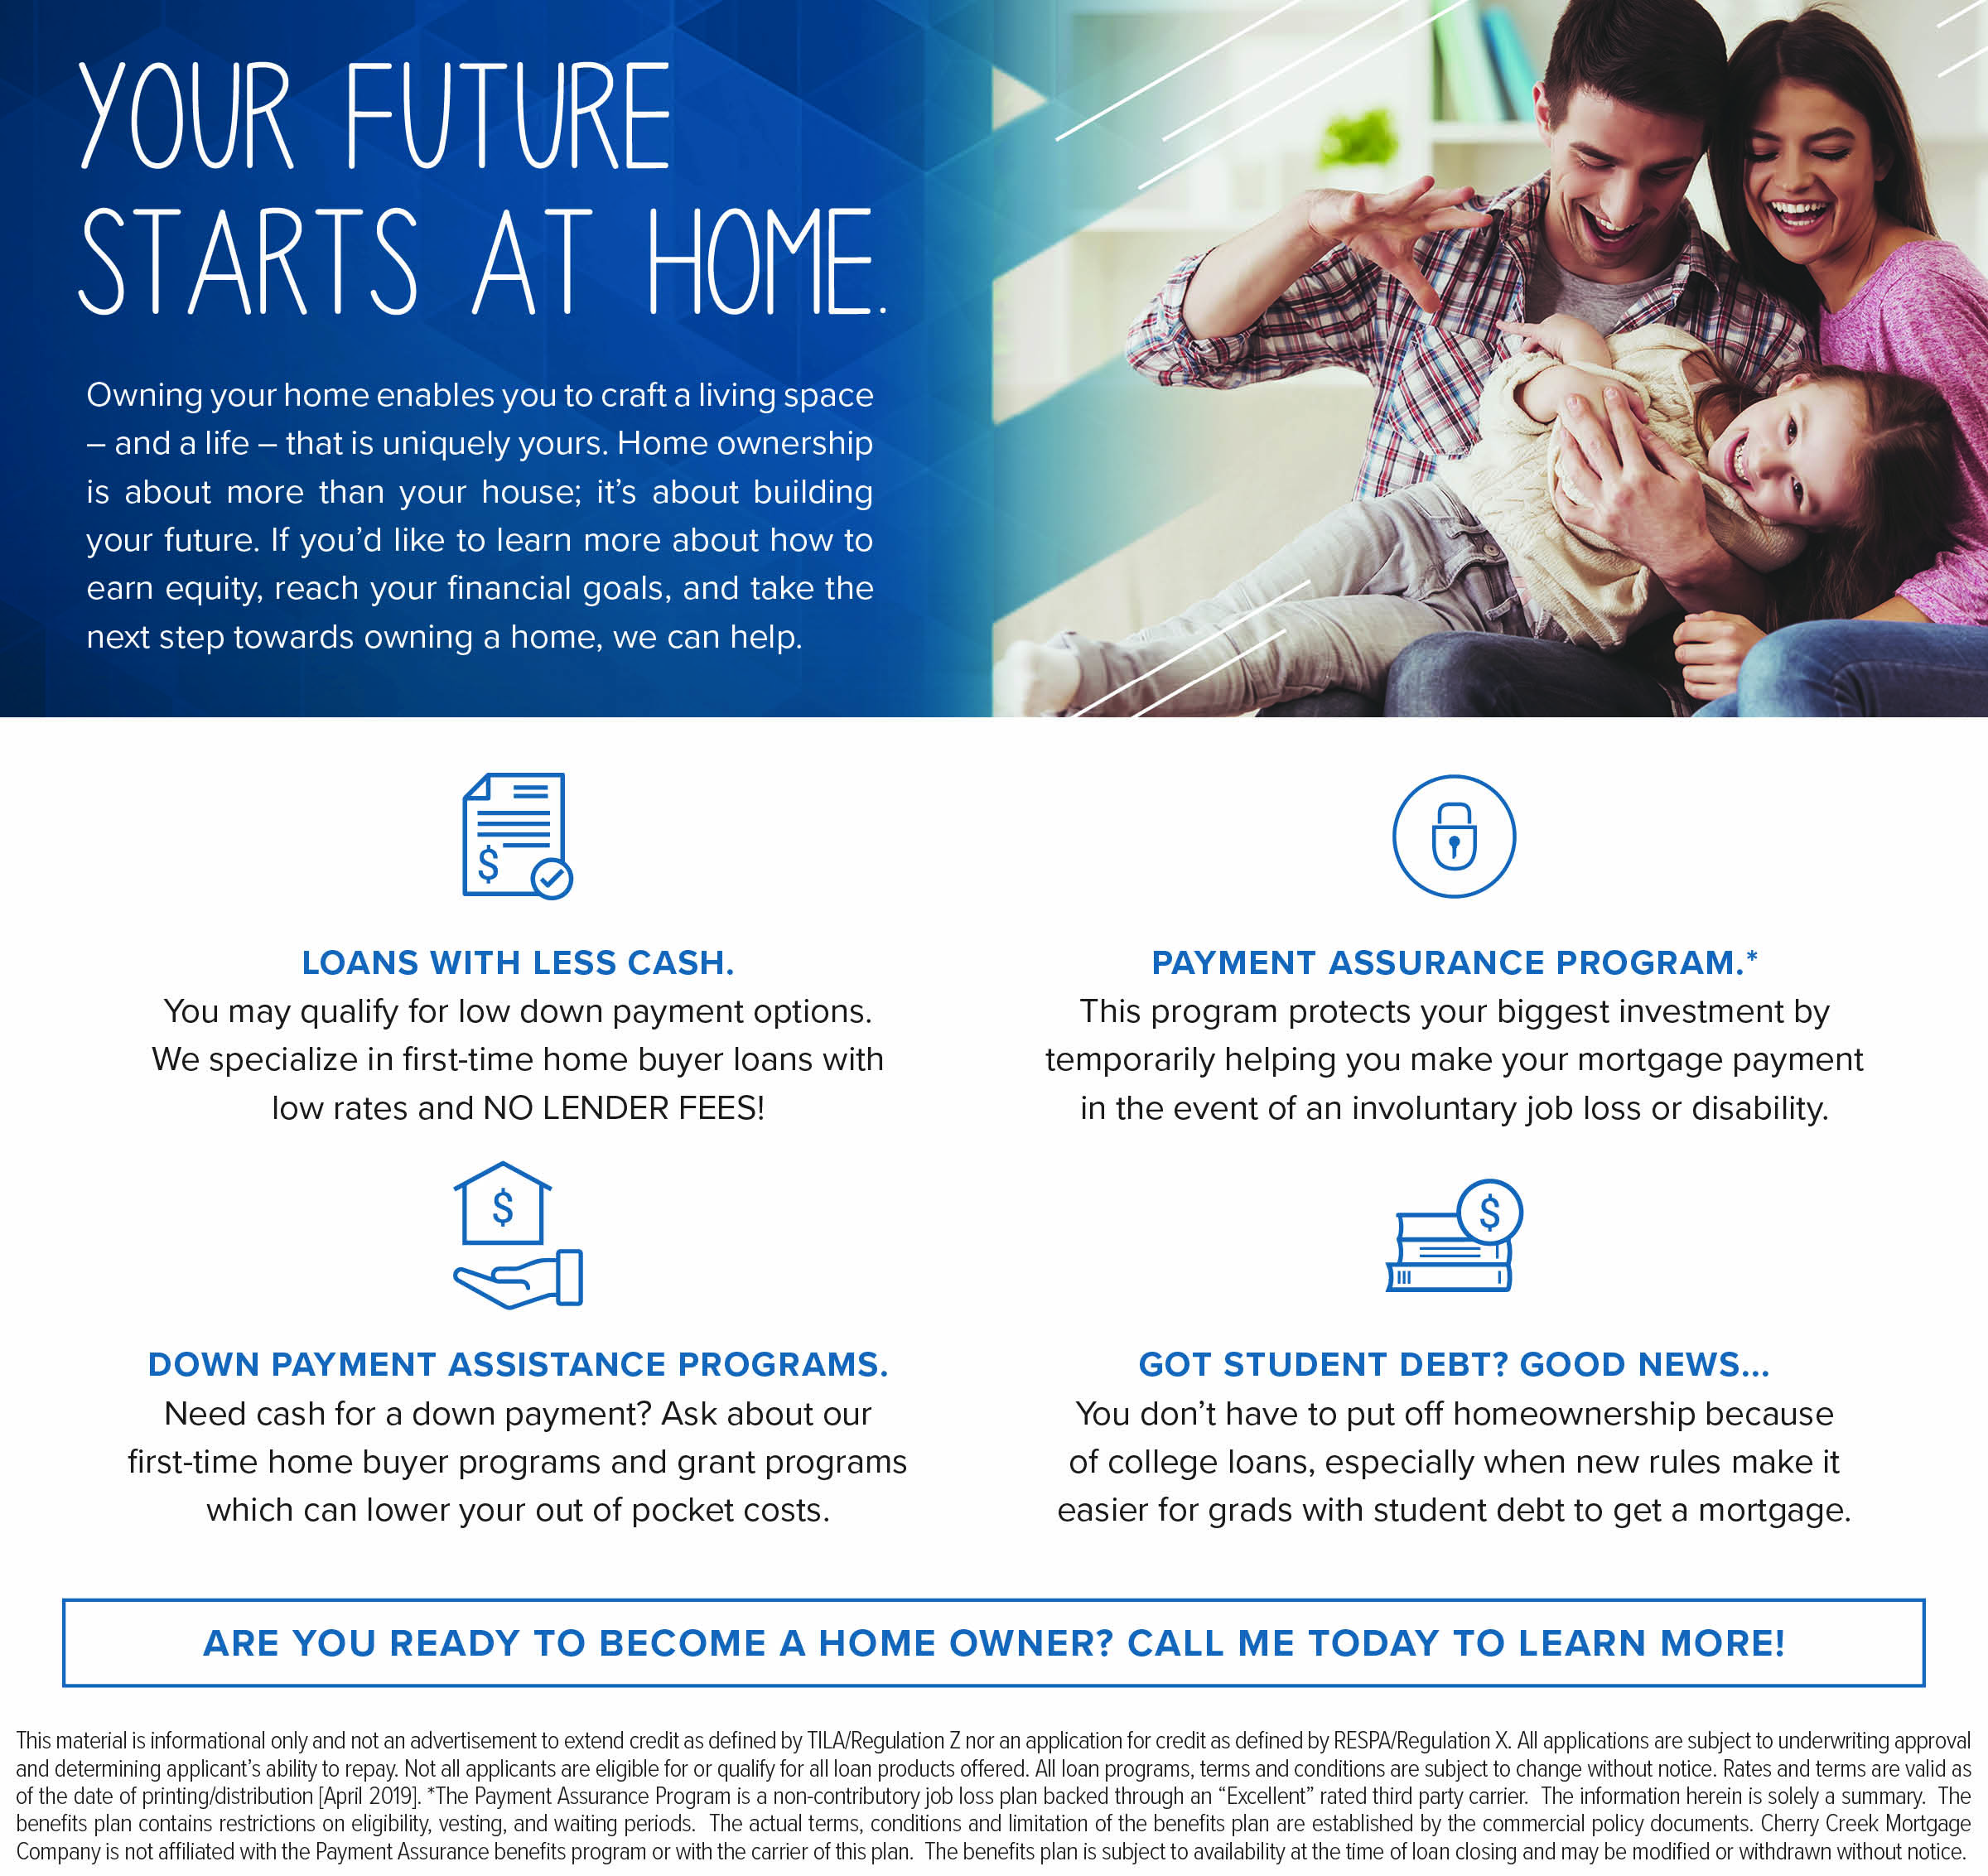 Mortgage Products - First-time Home Owner - OSI.jpg